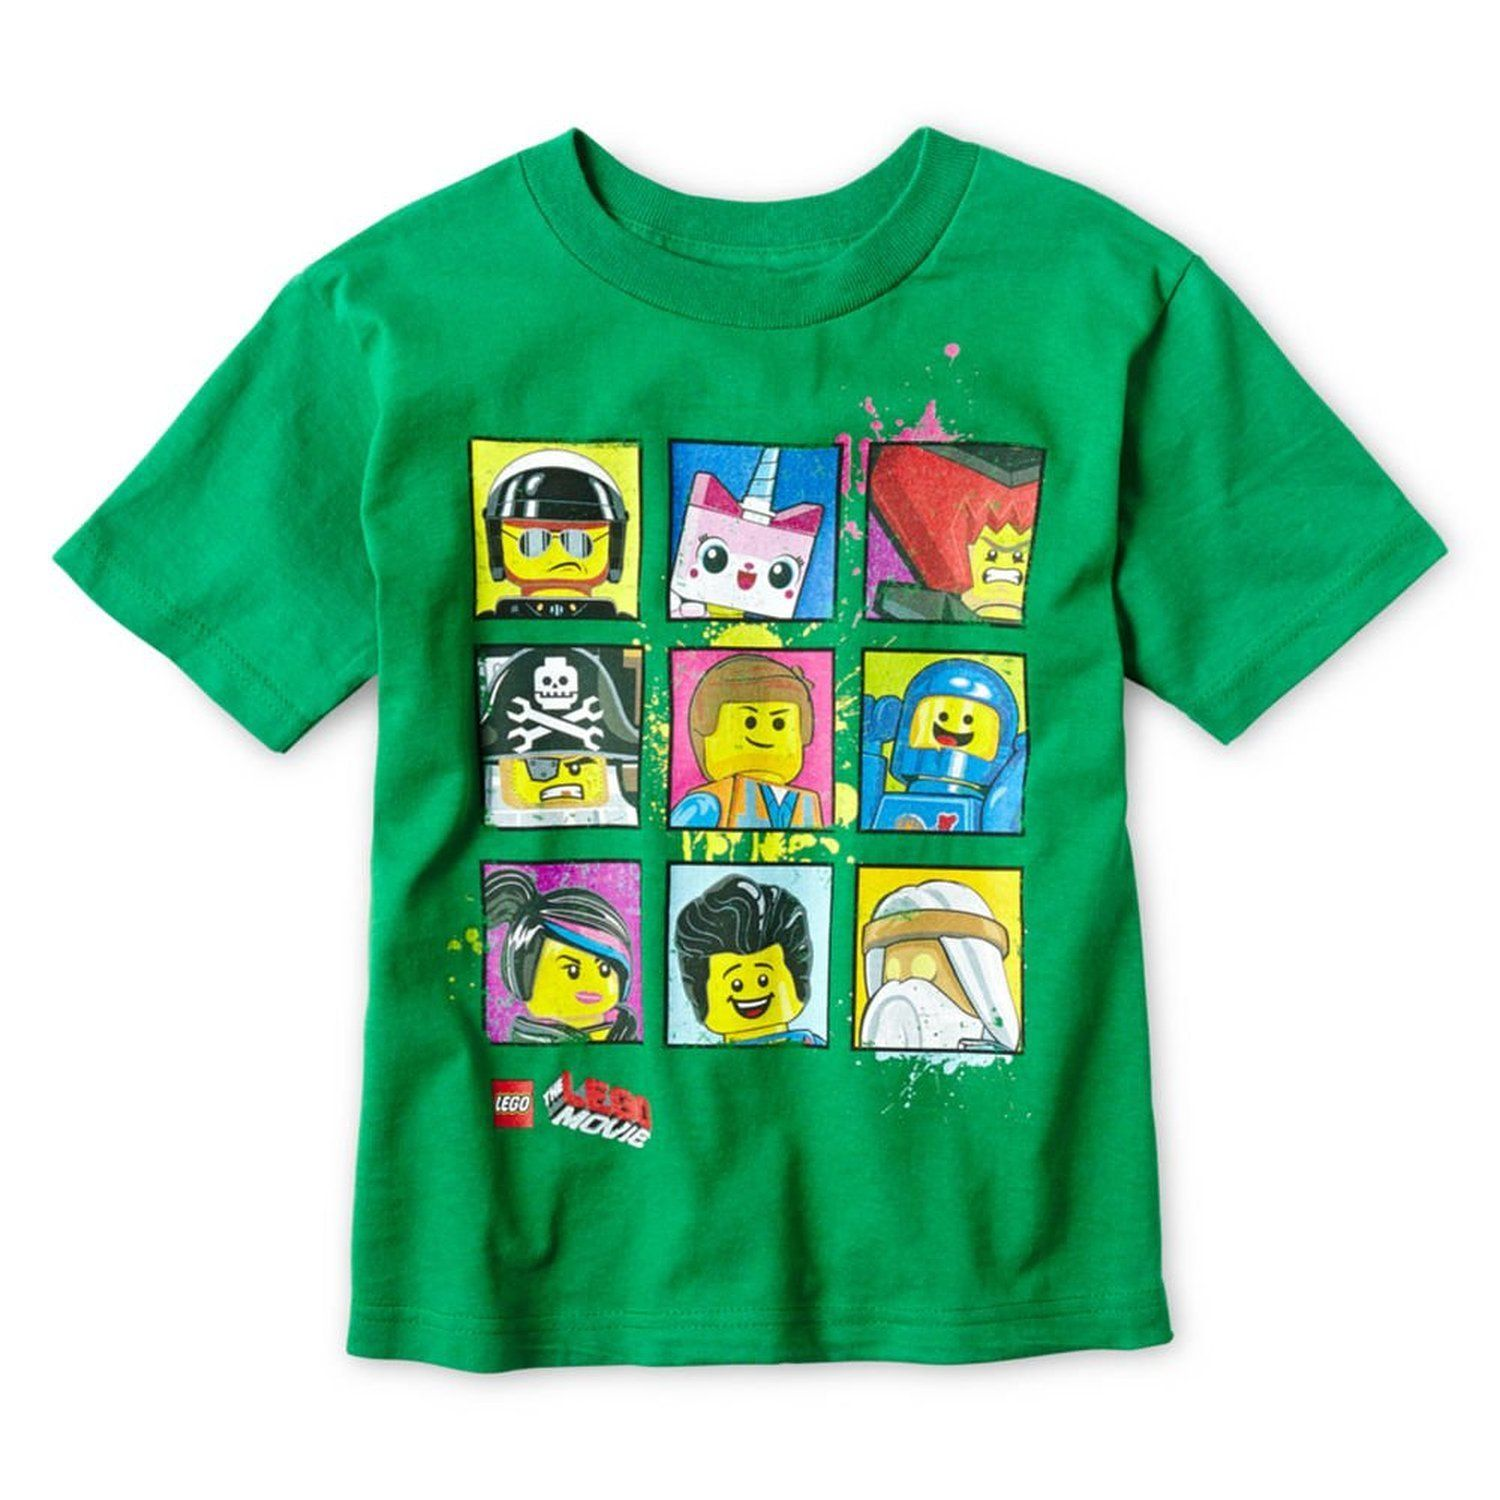 fb4f2634 Amazon.com: Lego Movie Graphic Tee - Boys 4-7 (L 7): Clothing Emmet t-shirt  Unikitty Good Cop Bad Cop